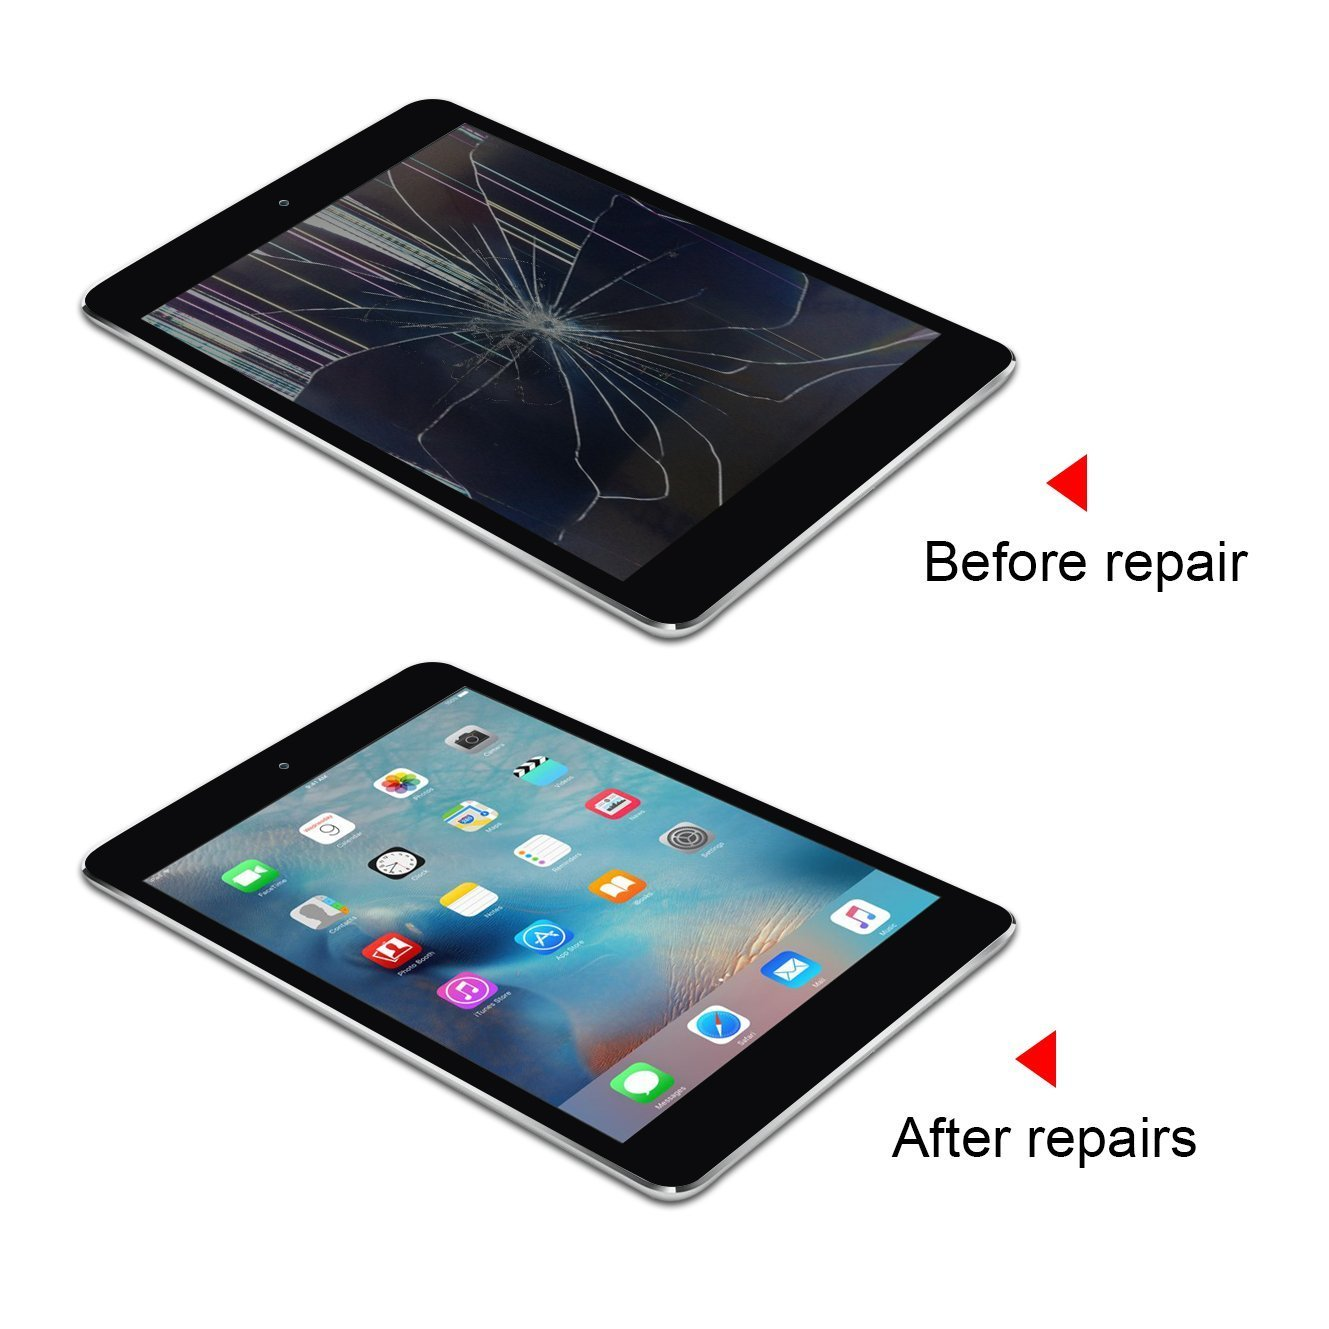 Srjtek Screen Replacement for IPad Mini 3 Touch Screen Digitizer A1599 A1600,Replacement Parts with IC Chip and Camera Holder(Black) by srjtek (Image #6)